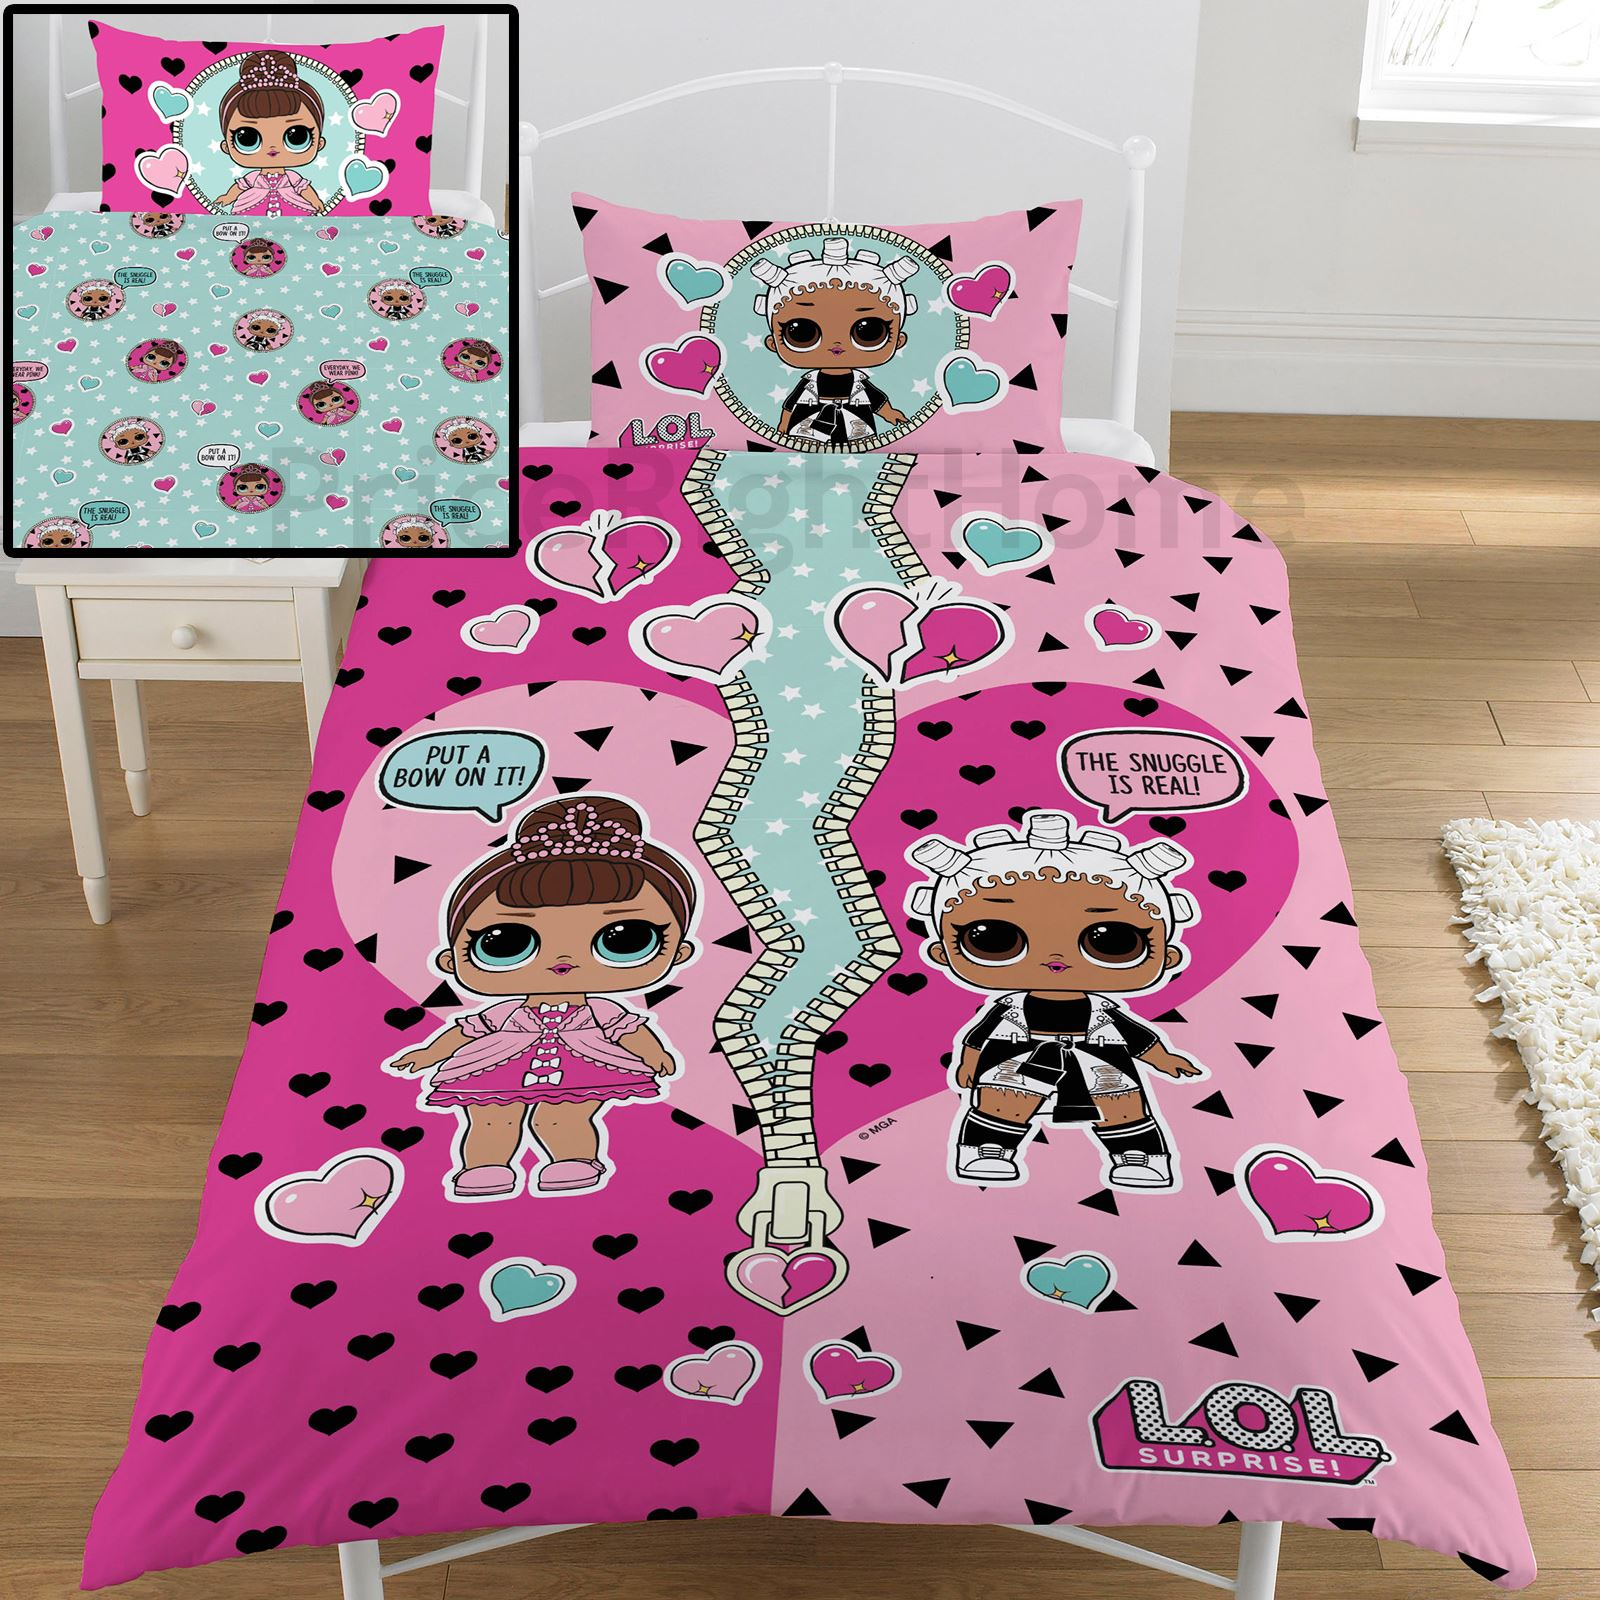 Lol Surprise Opposites Single Duvet Cover Set Reversible